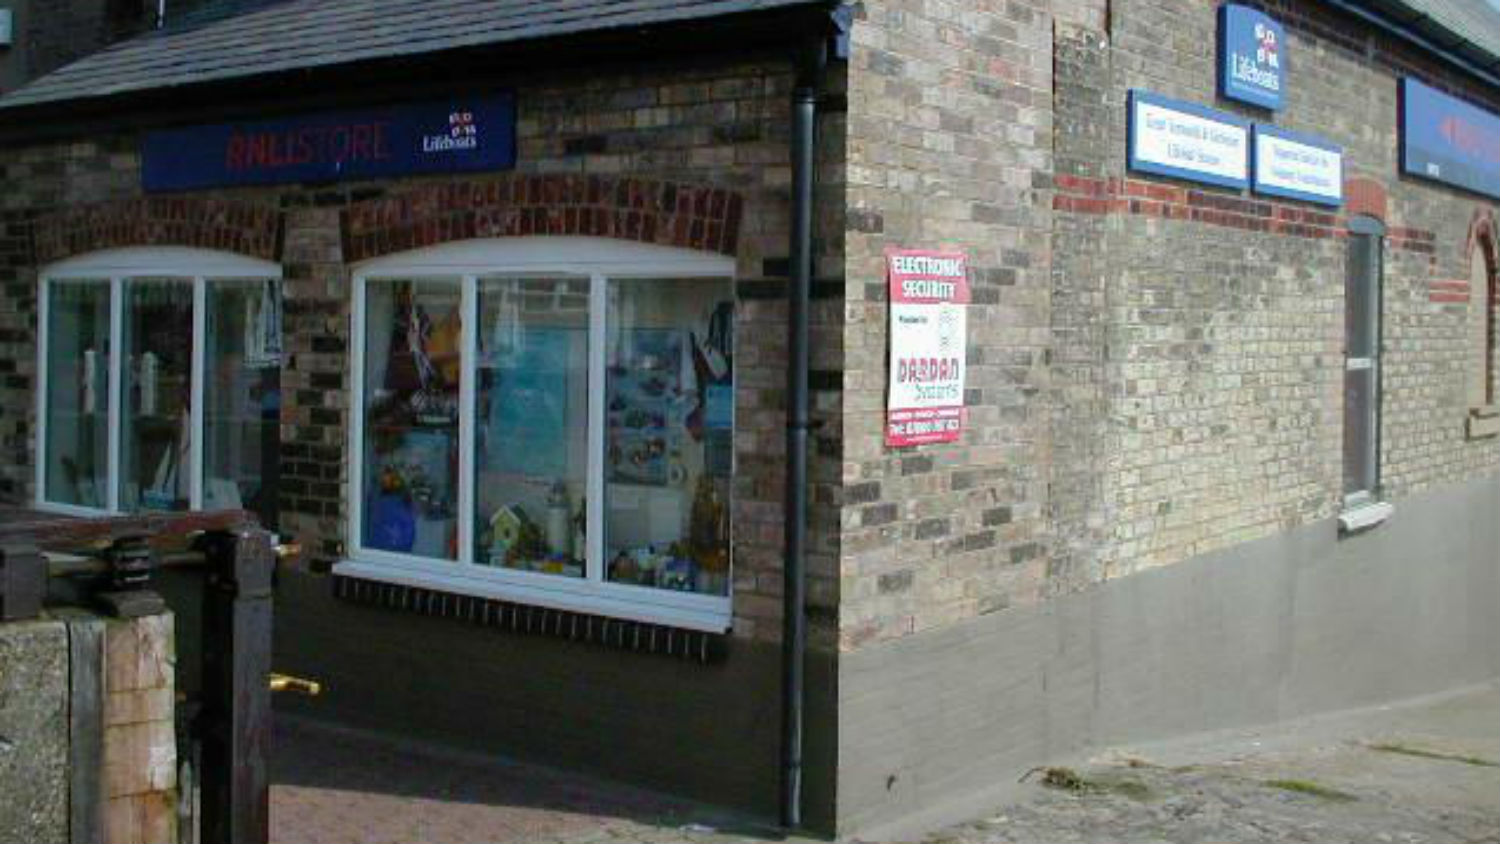 Buy RNLI gifts and souvenirs from our Great Yarmouth and Gorleston shop and help save lives at sea.